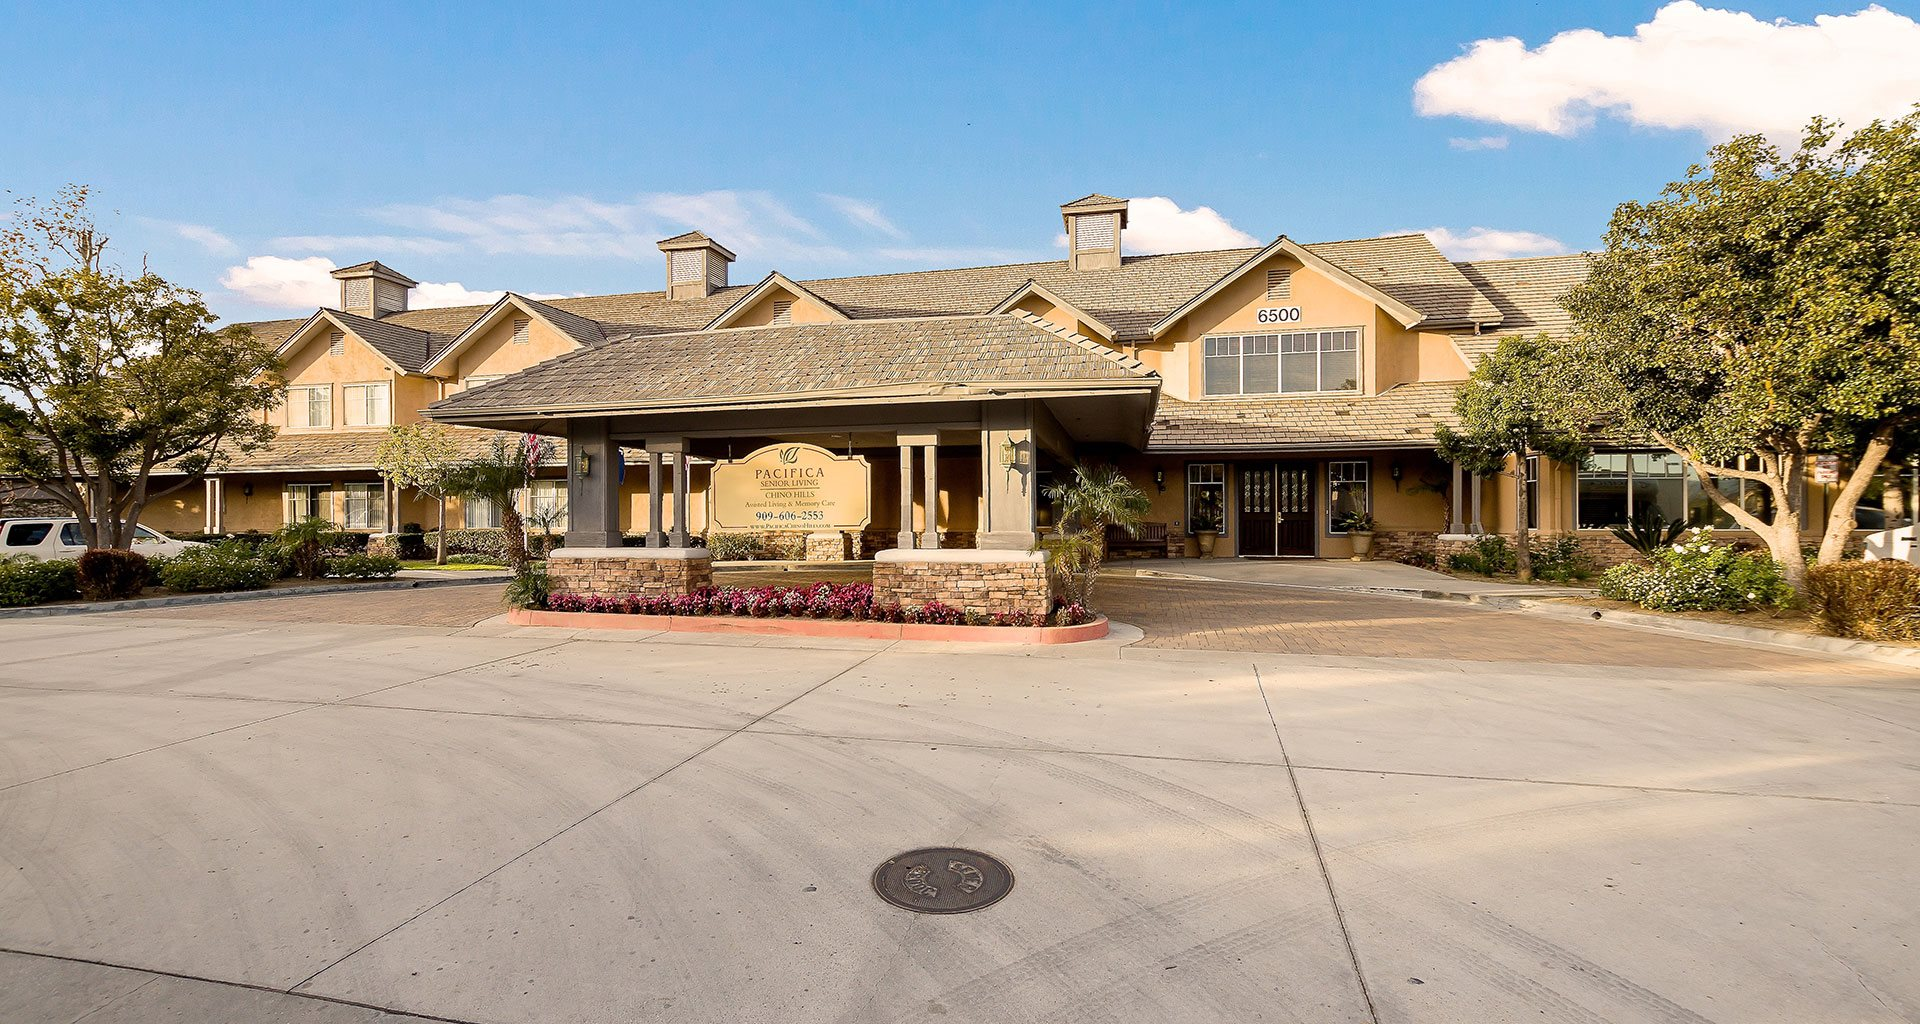 Grand Entrance To Property at Pacifica Senior Living Chino Hills, California, 91709